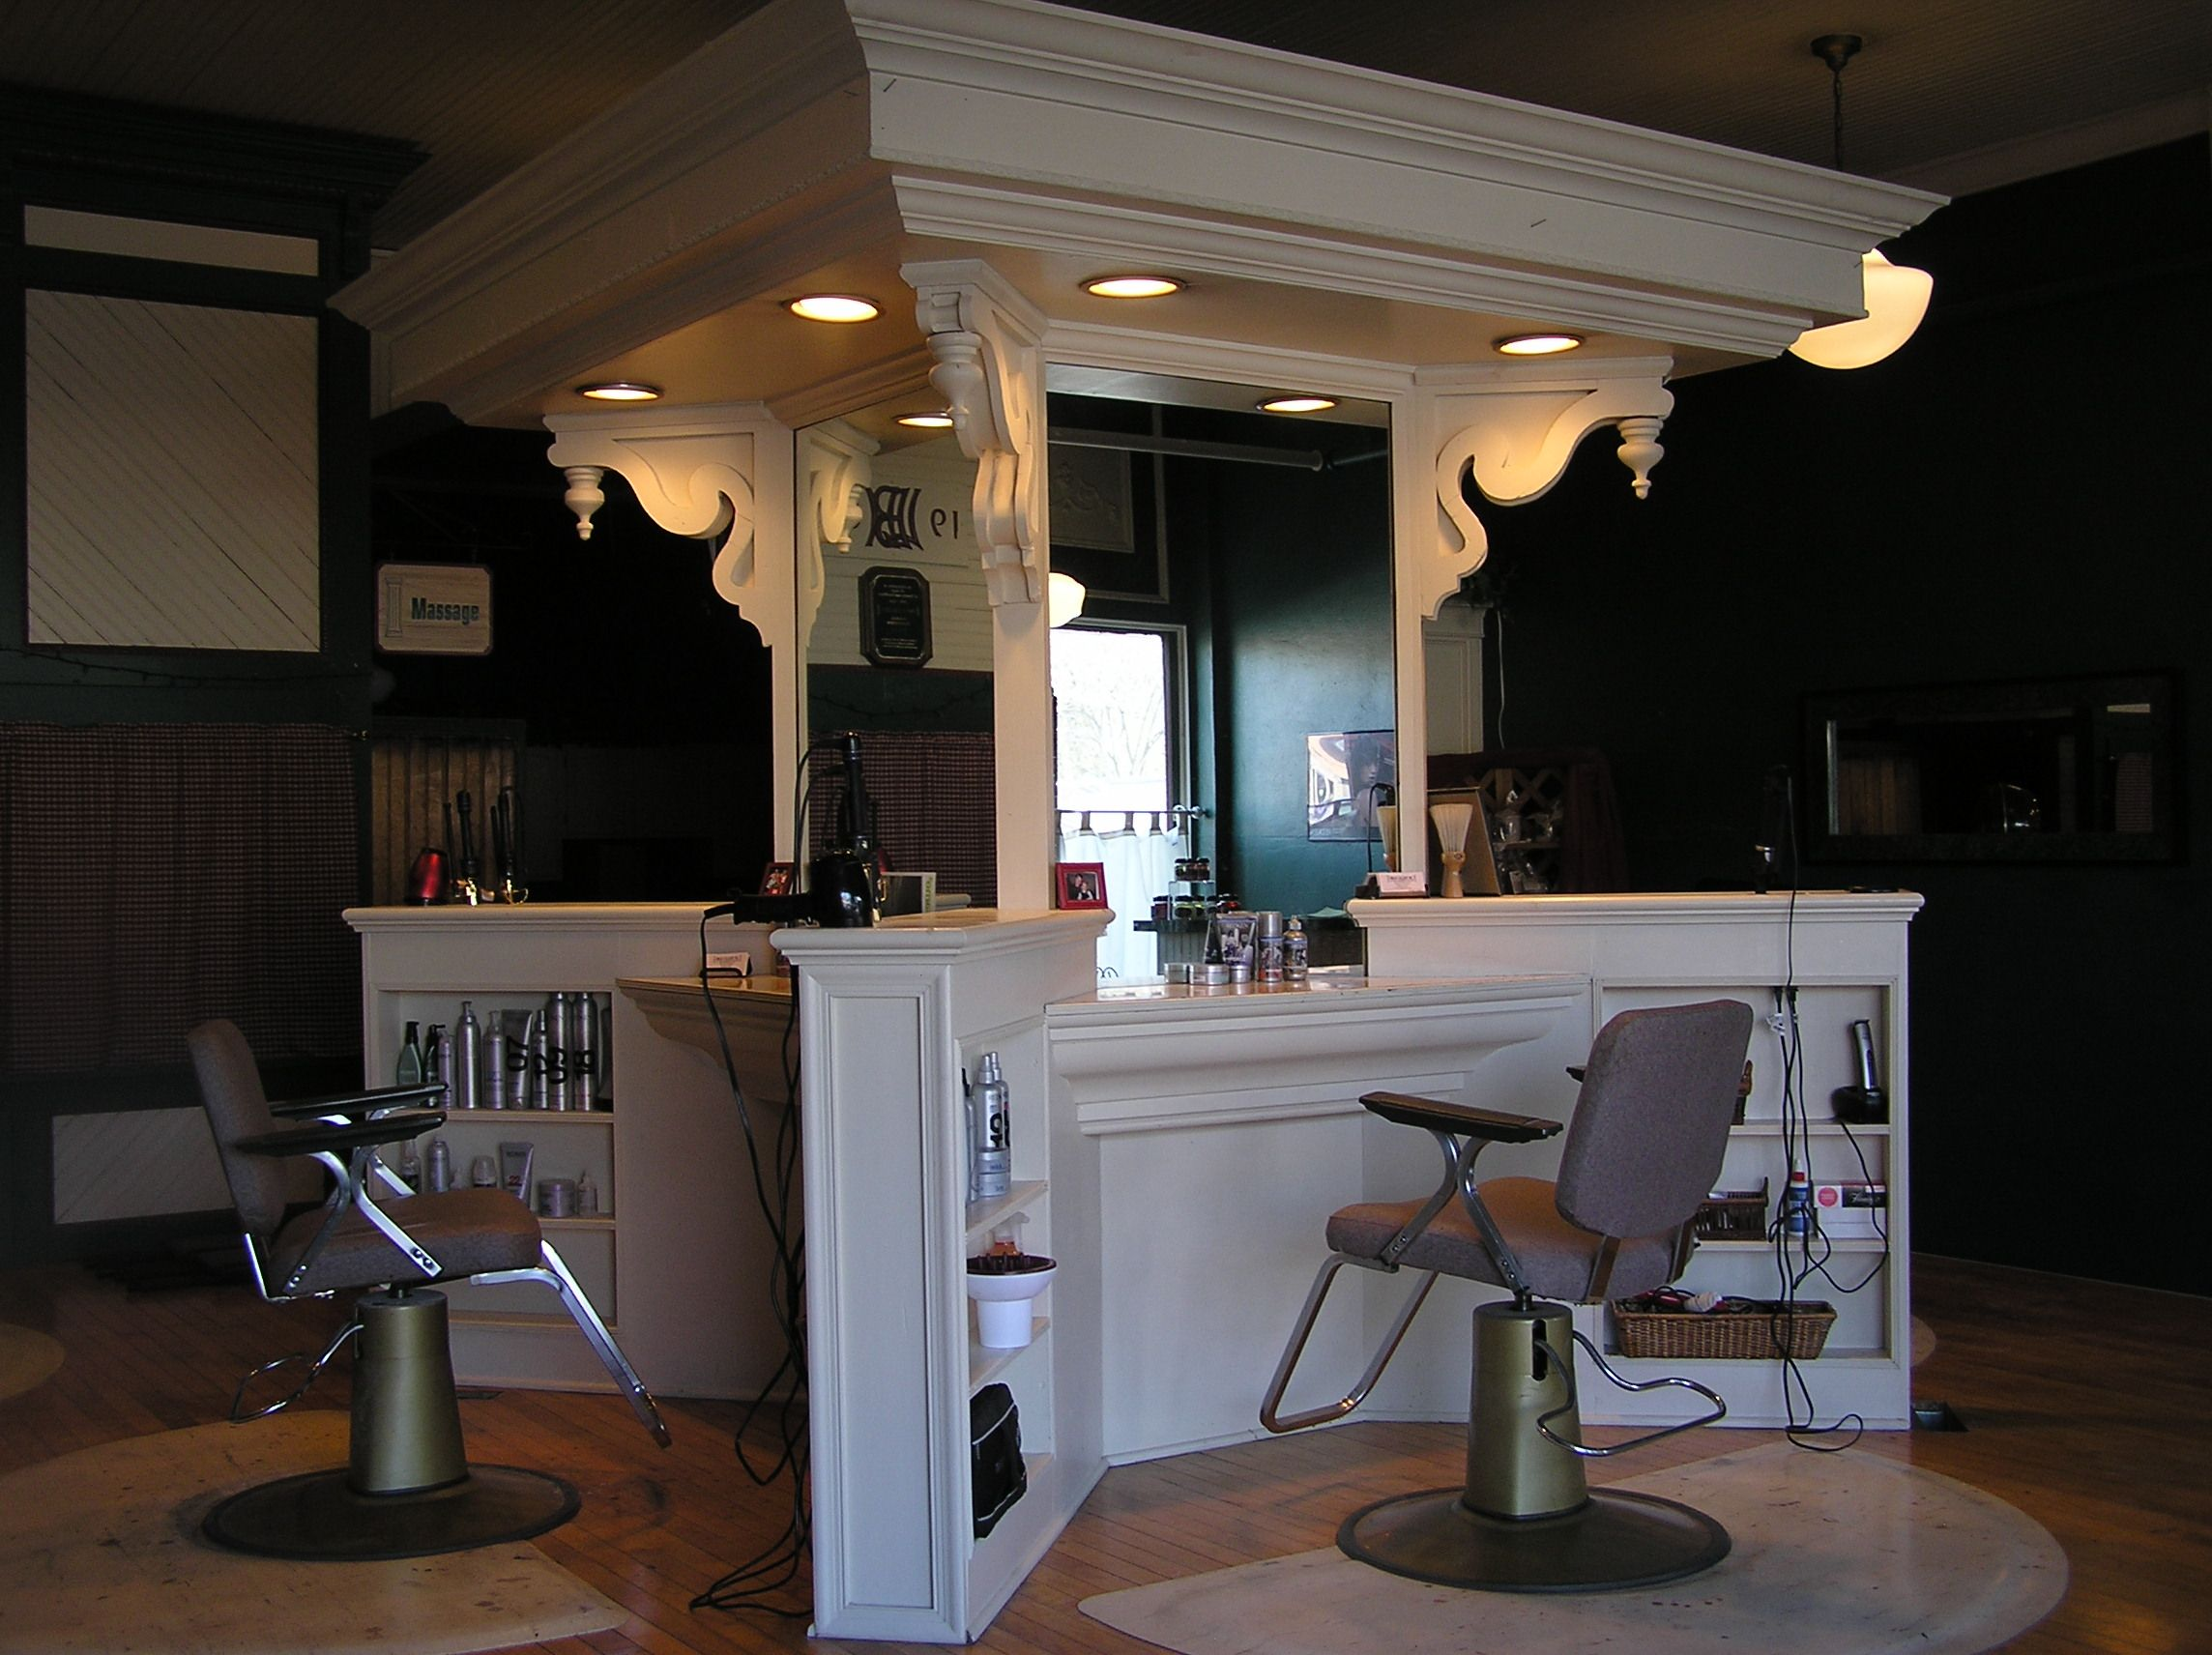 Eruan salon and spa 44 reviews hair salons 41 w 38th st for 38th street salon